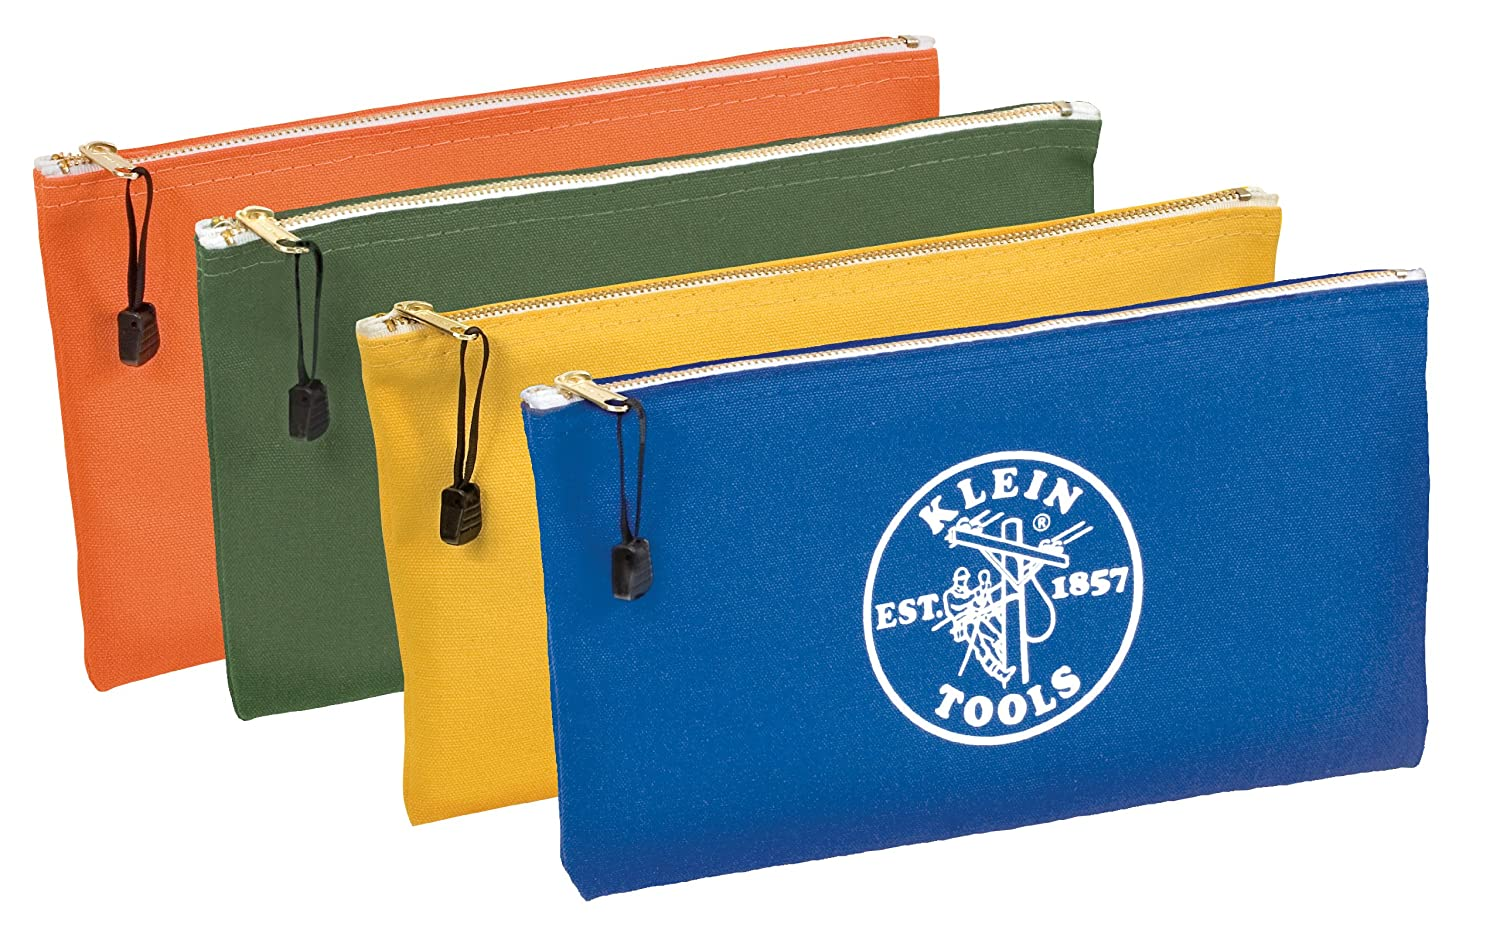 Klein Tools 5140 Canvas Zipper Bags, Olive, Orange, Blue, Yellow ...